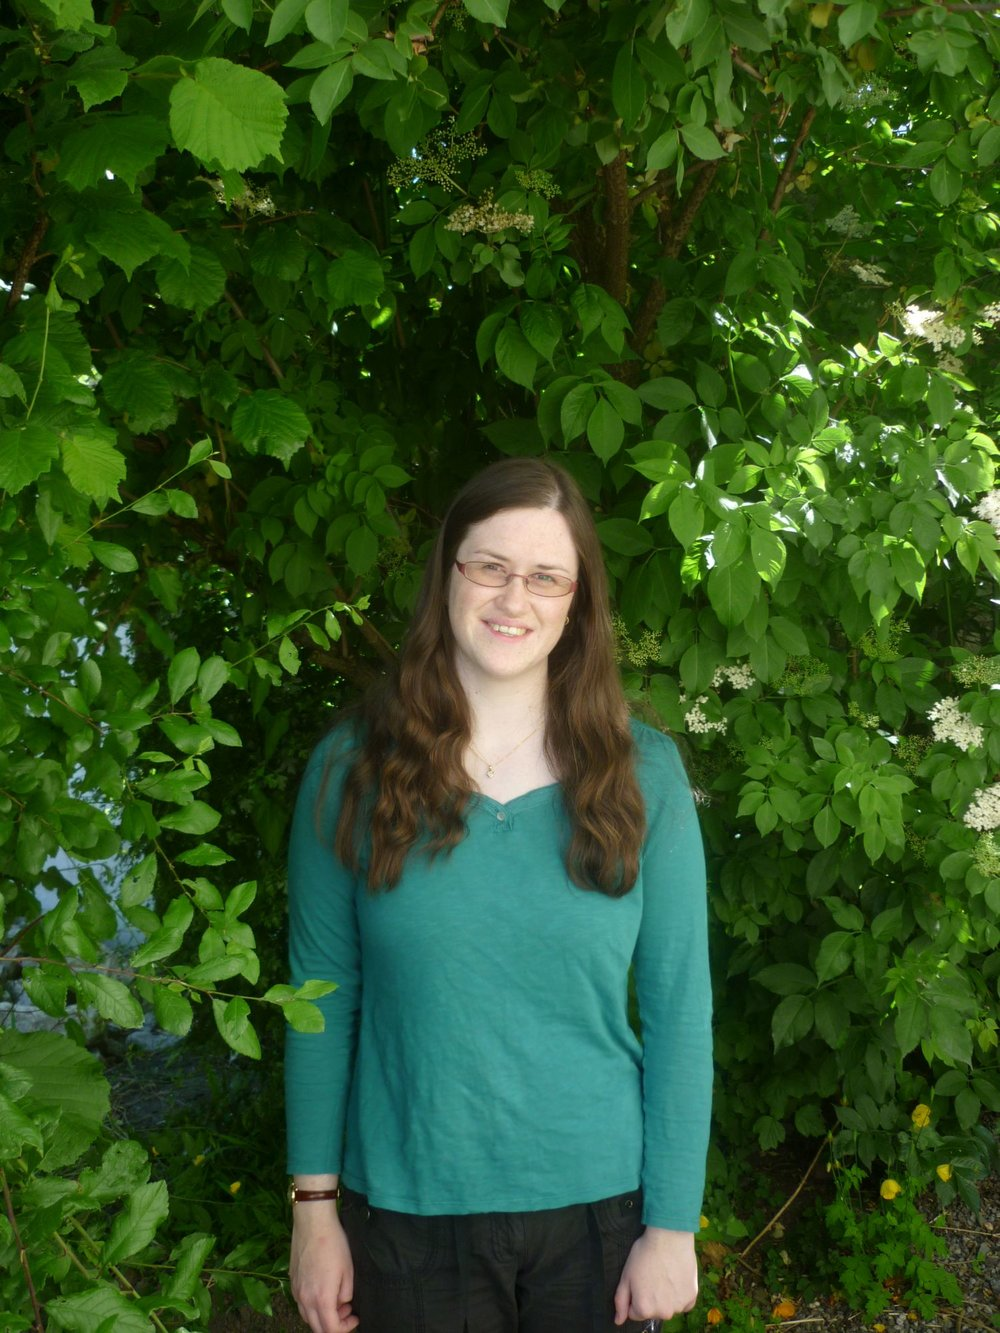 The image is portrait style. It shows the upper two-thirds of a woman in her twenties. She has her head tilted slightly to the right and is smiling. She has long wavy brown hair, pale skin, and wears glasses. Her hands are by her sides. She is wearing a dark green long-sleeved t-shirt and black trousers. She is standing in front of an elder bush and is surrounded by green leaves. Tree branches can be seen behind her, and to her right small white flowers are visible among the leaves.